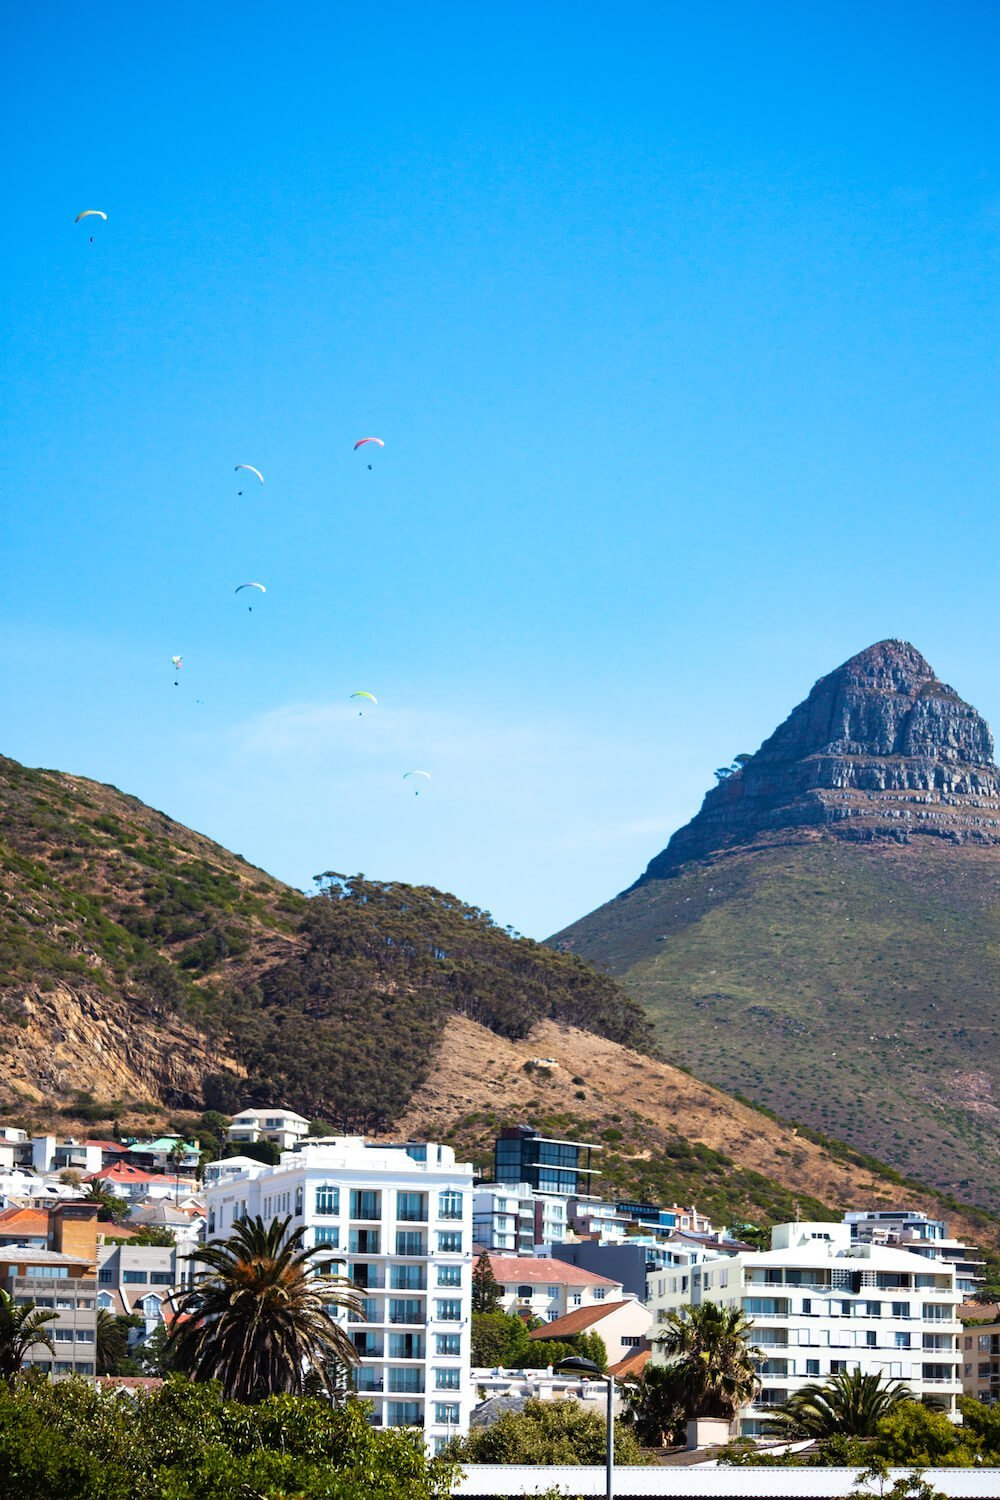 Paragliders in Cape Town